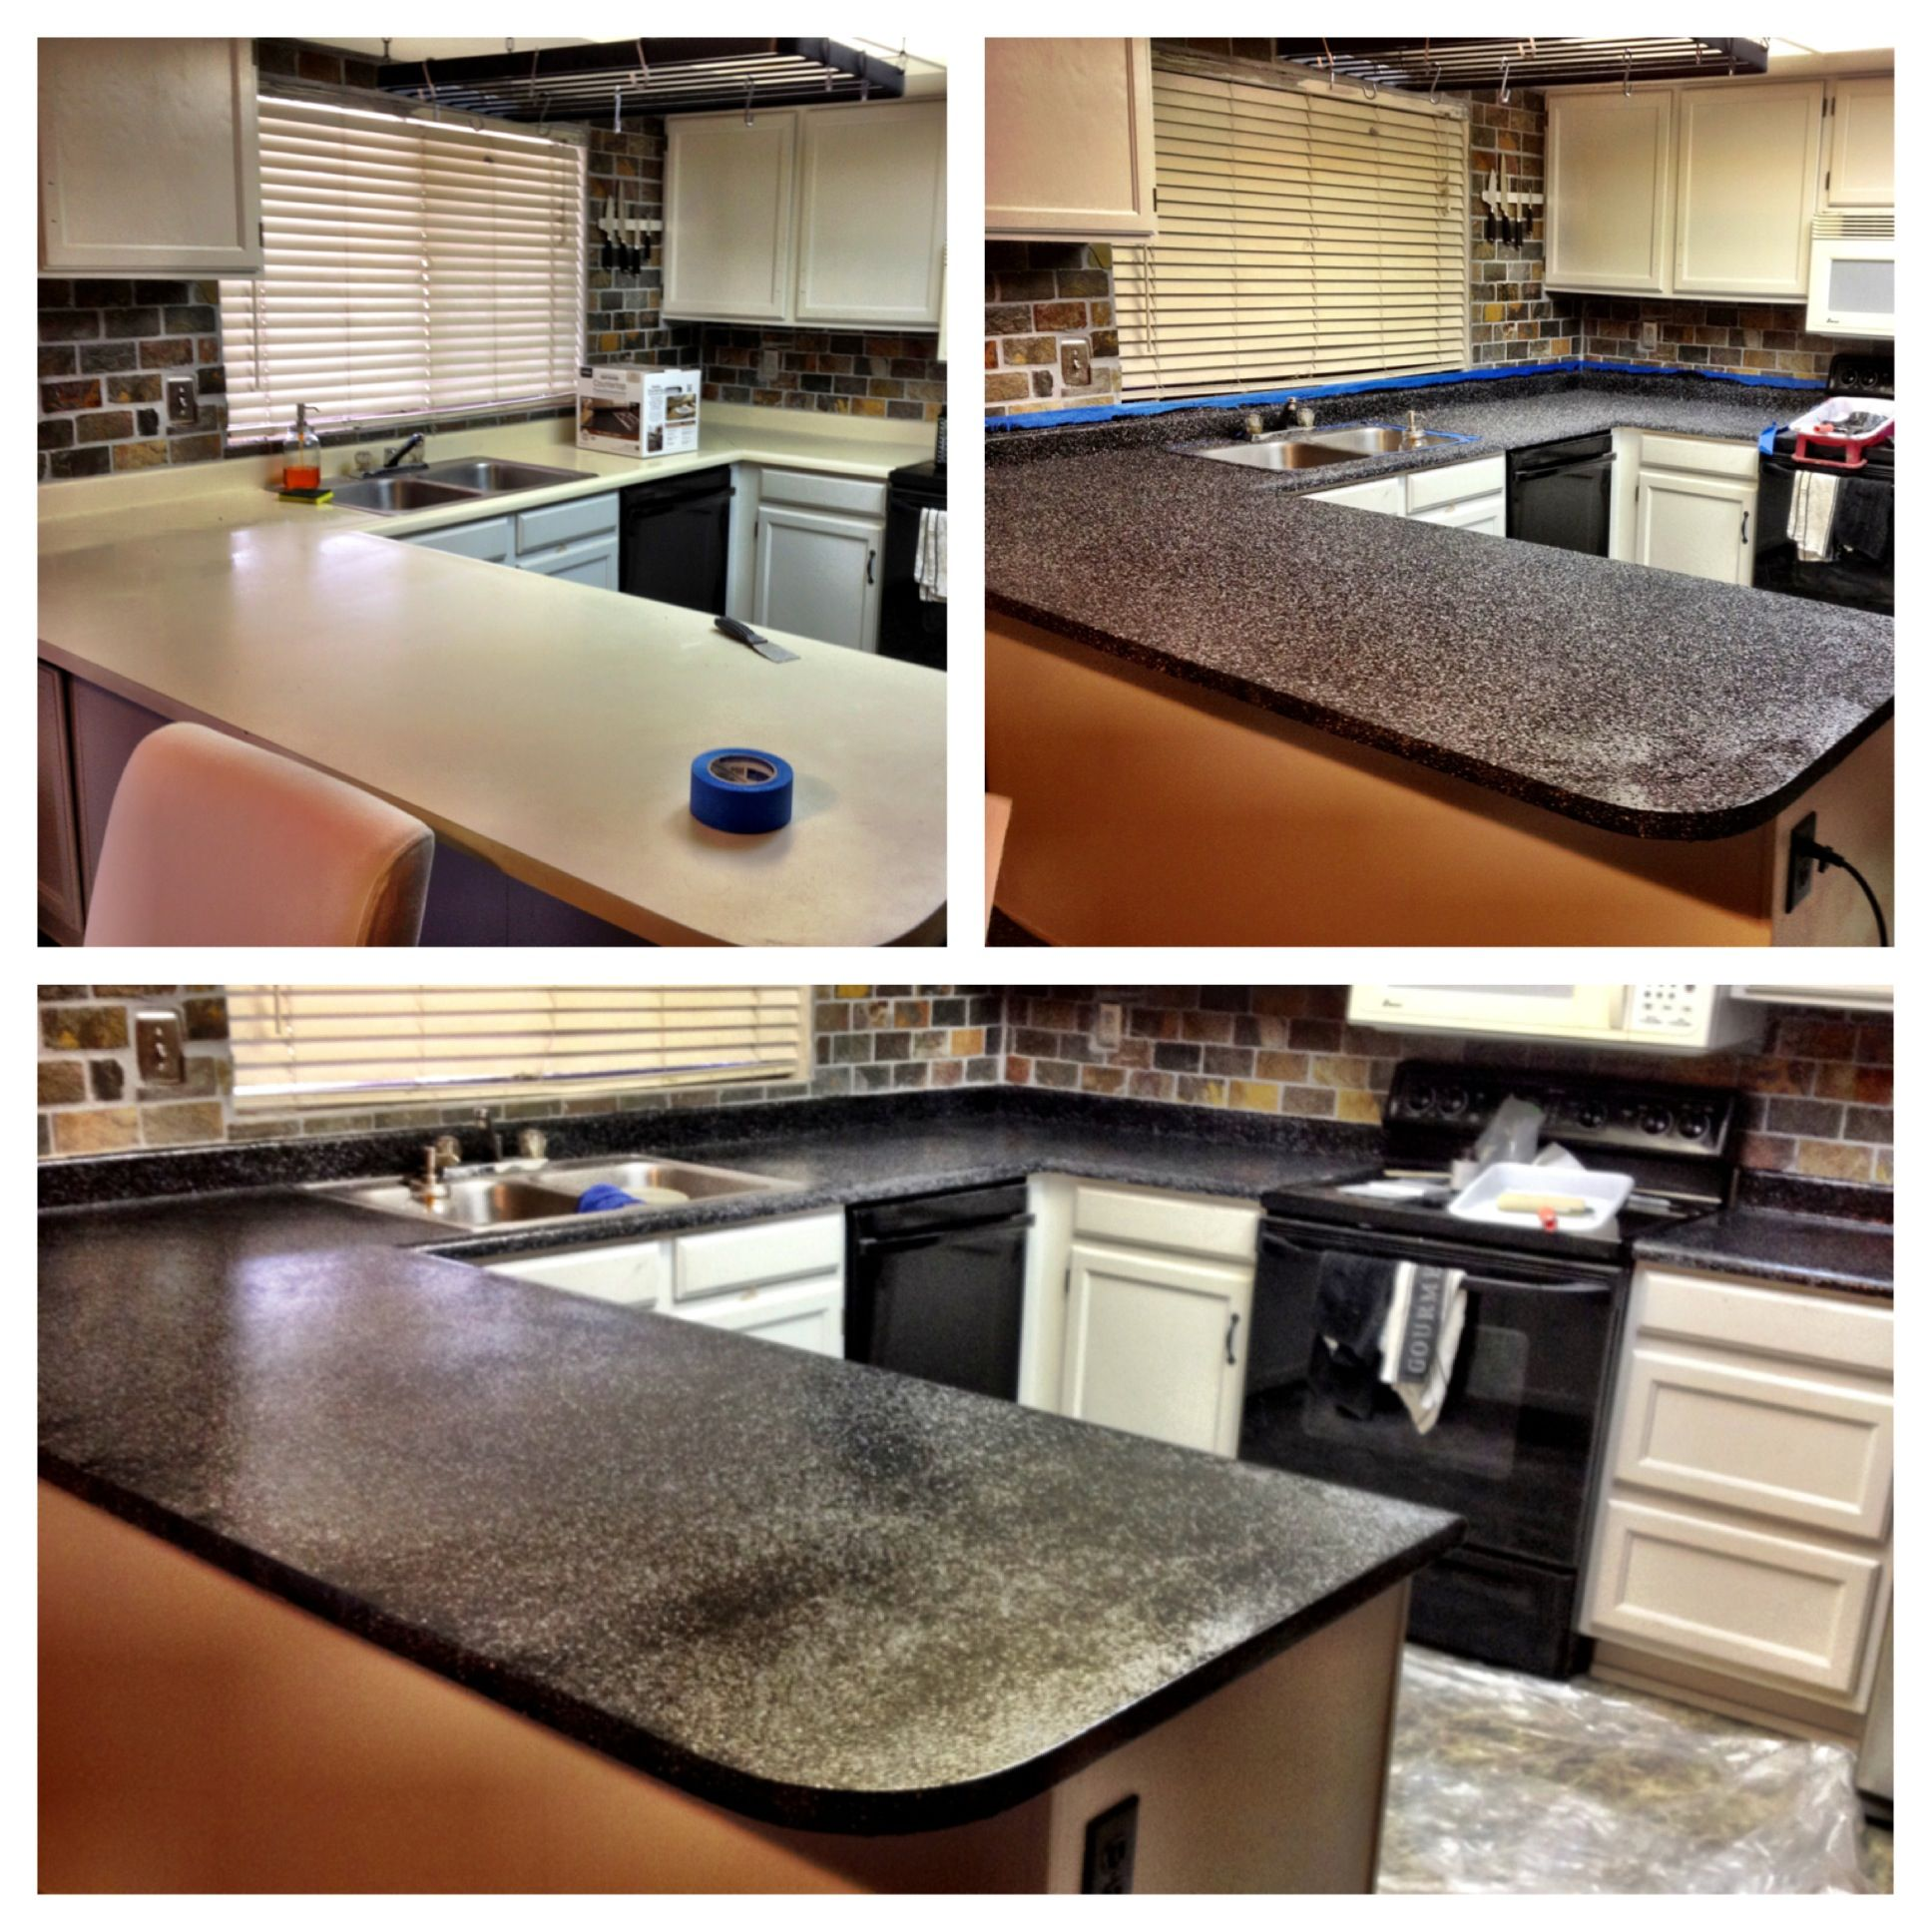 DIY kitchen counter make over that I LOVE Rustoileum kit from